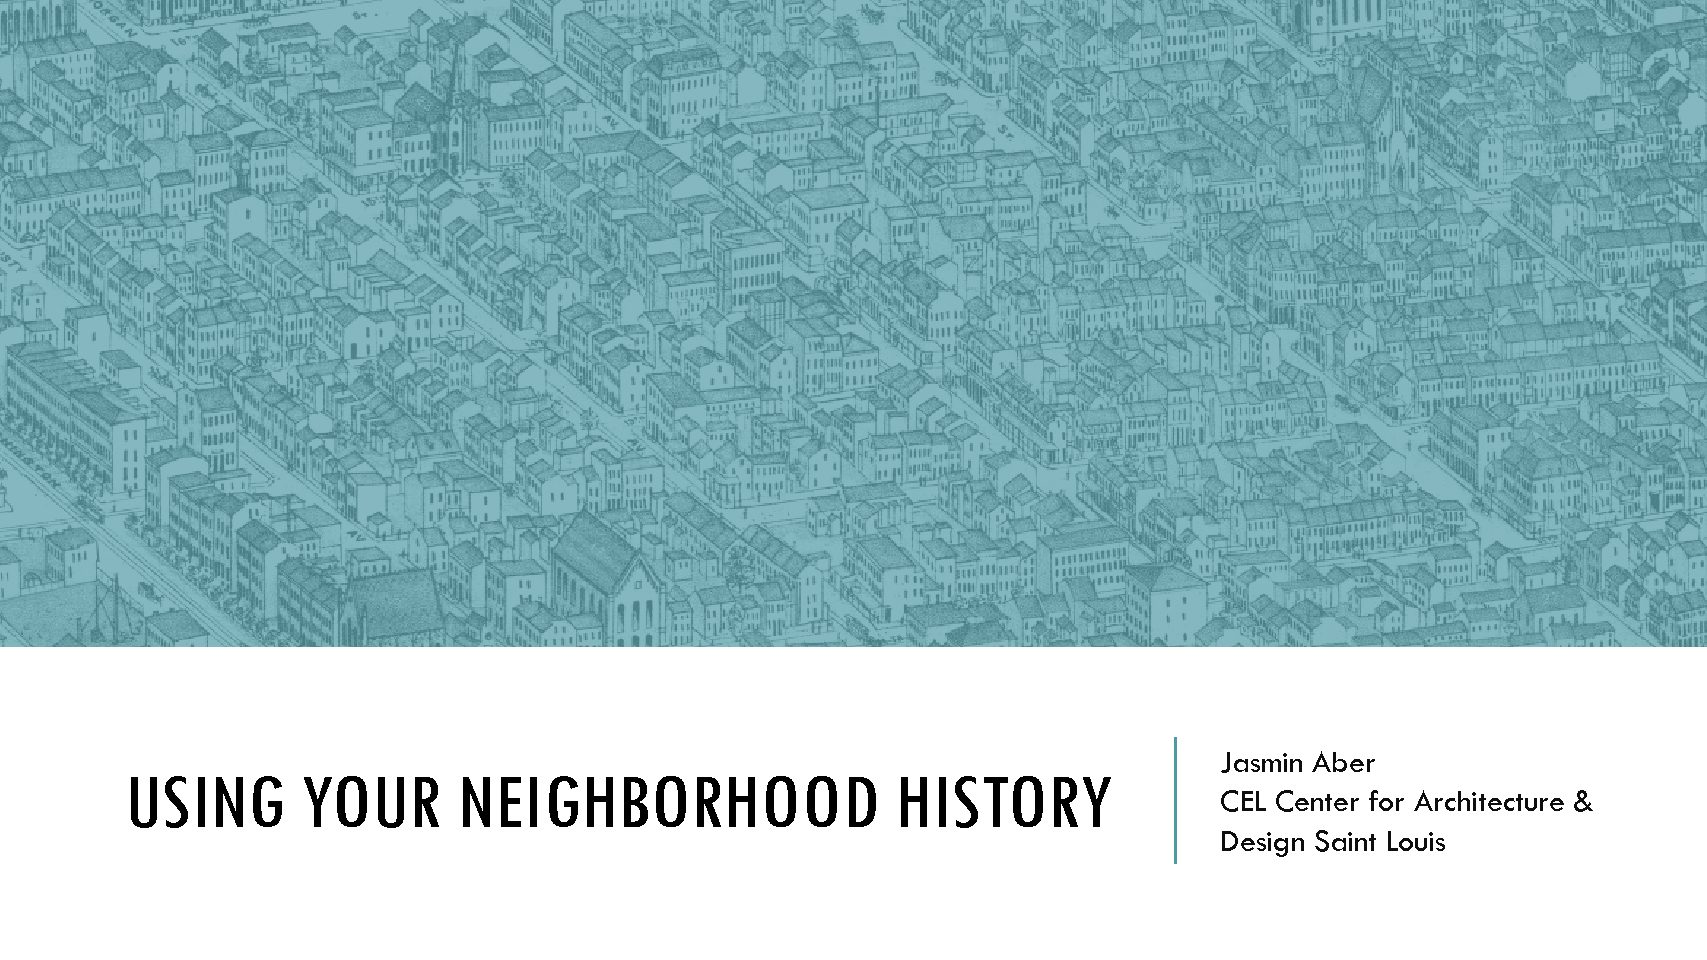 Workshop 4: Using Your Neighborhood History: How do you maximize its potential impact? Jasmin Aber